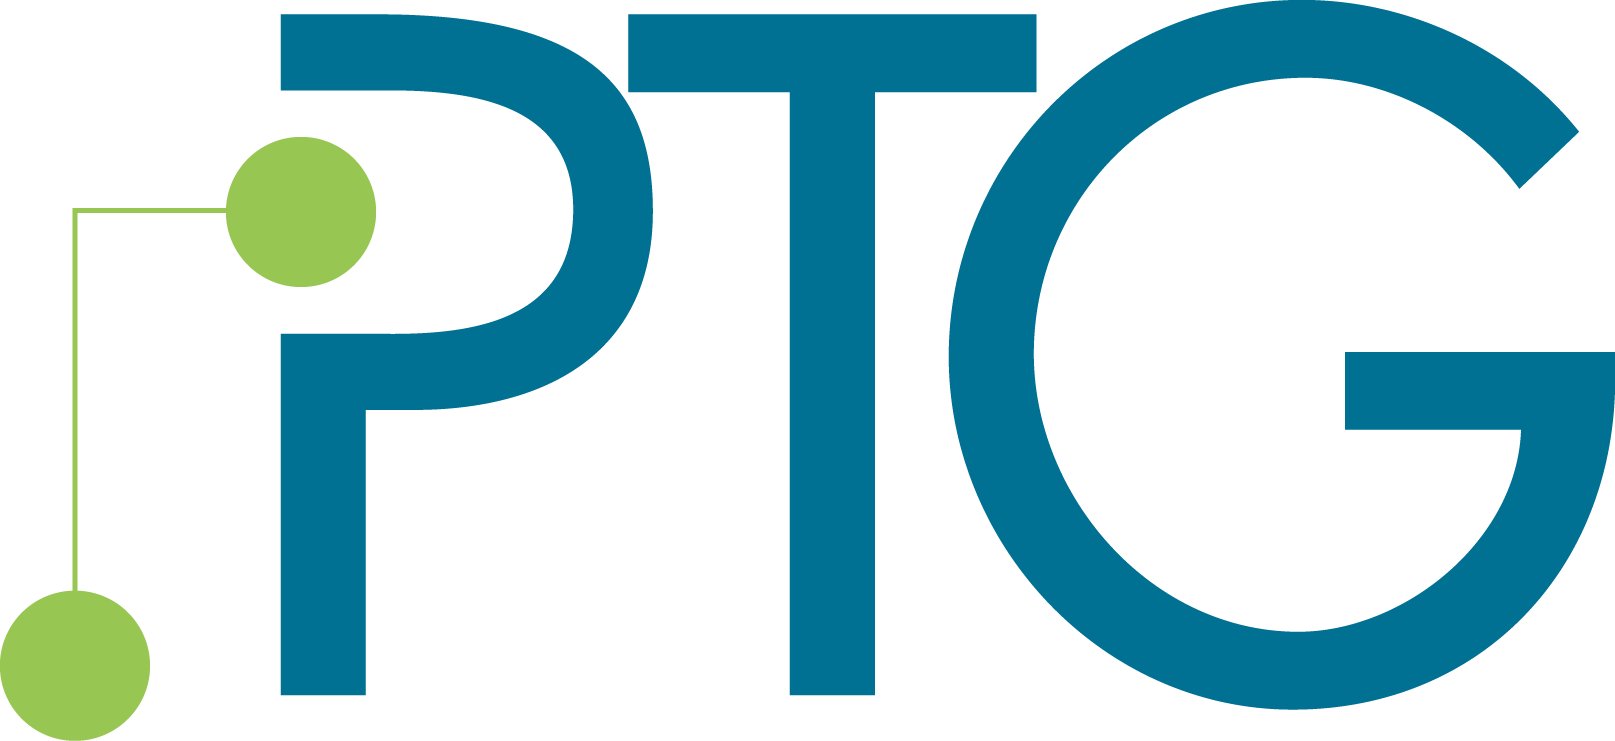 IT Support from PTG